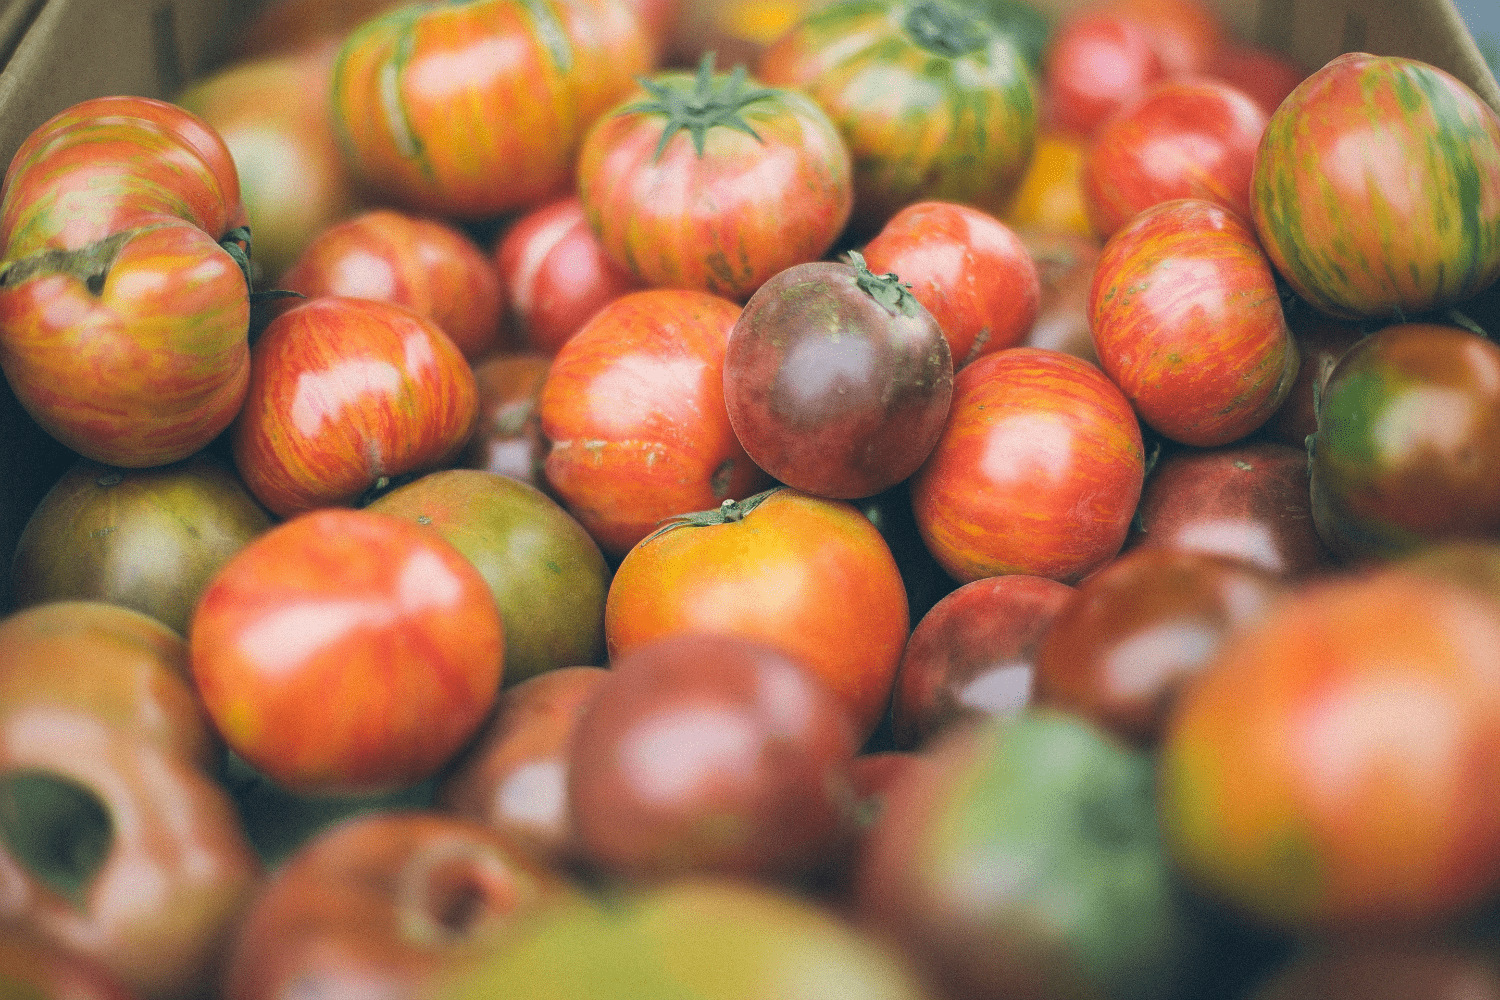 The Beginner's Guide to Eating More Whole Foods | Processed foods are not food at all and these helpful tips and tricks will inspire you to add more clean eating fruits, vegetables, meats, and grains into your diet. On a budget? That's okay, you can still eat healthy! Need some motivation? These hacks will teach you what to buy at the store and simplify your shopping list so you can make healthy recipes and plan your meals accordingly. What do you have to lose except maybe a little weight? But you will gain energy and confidence!